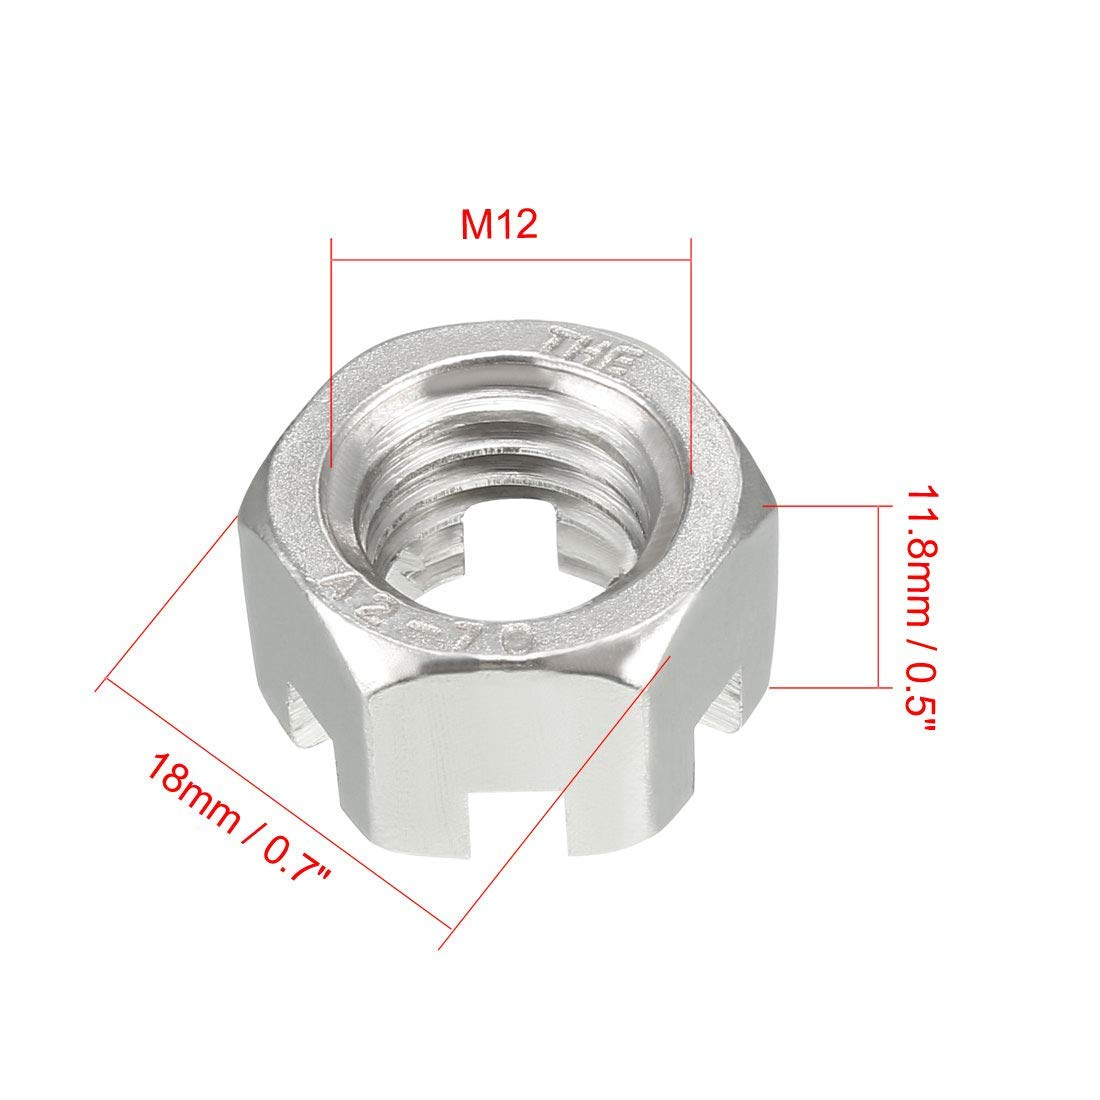 M12 x 1.75mm 304 Stainless Steel Slotted Hexagon Nuts Pack of 5